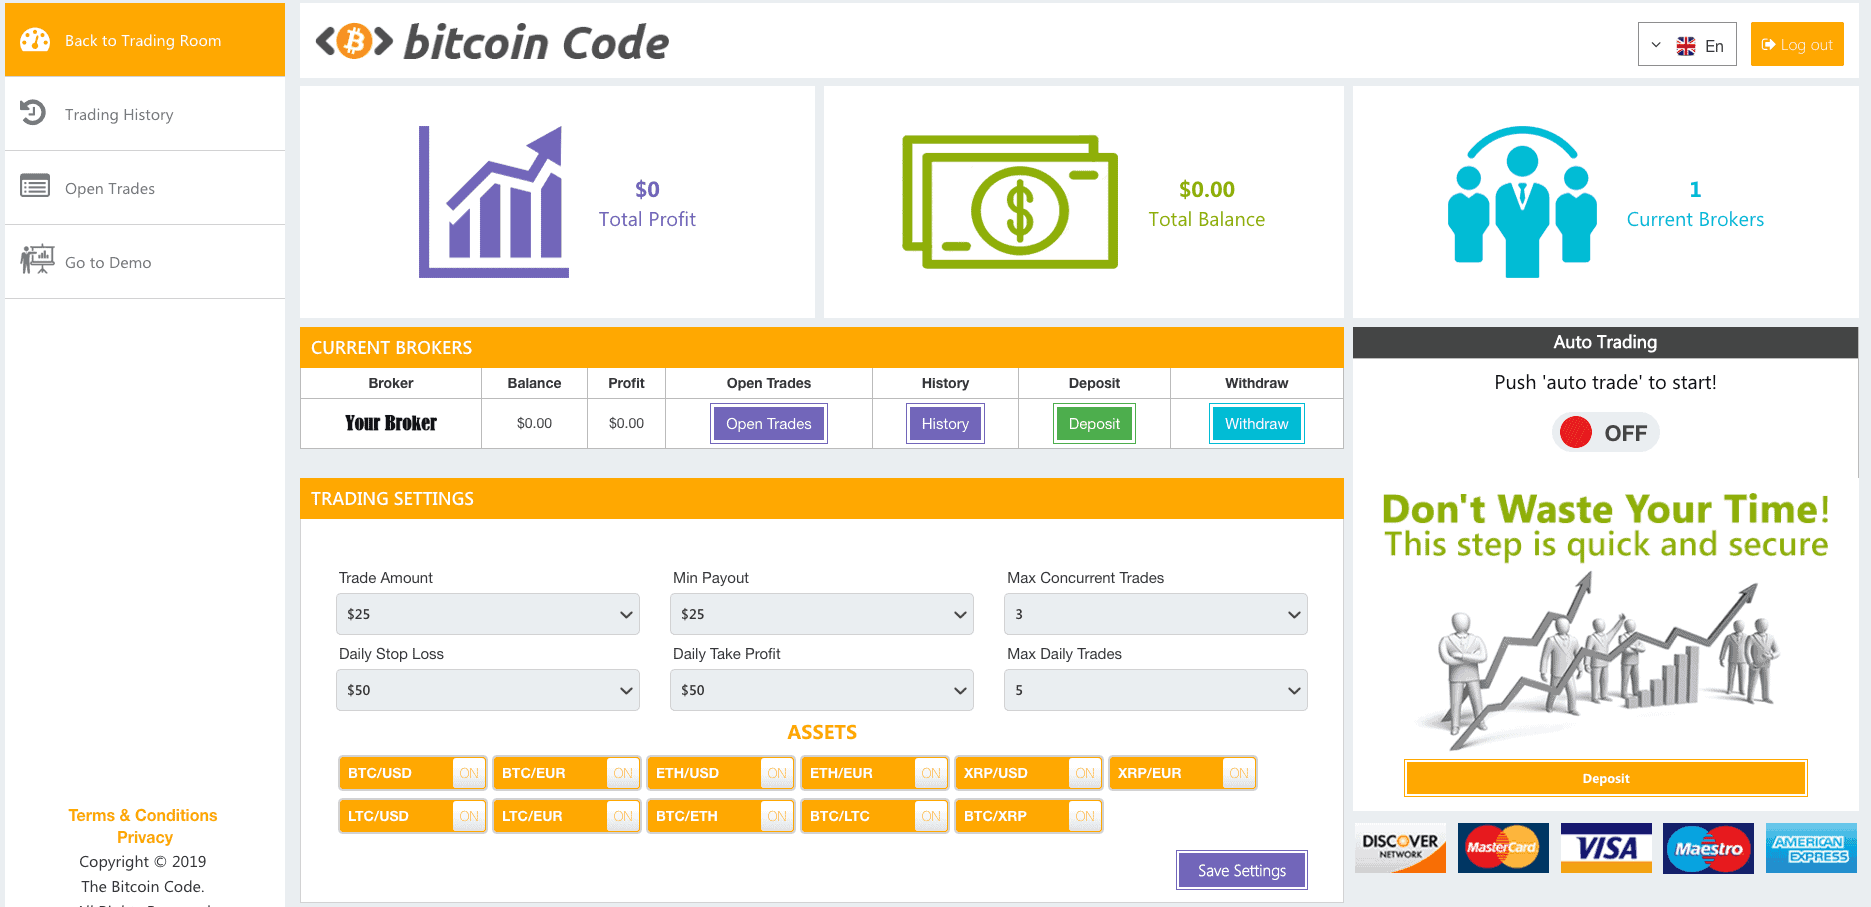 Bitcoin Code Review | Scam or Legit? 🥇 Website For The TRUTH